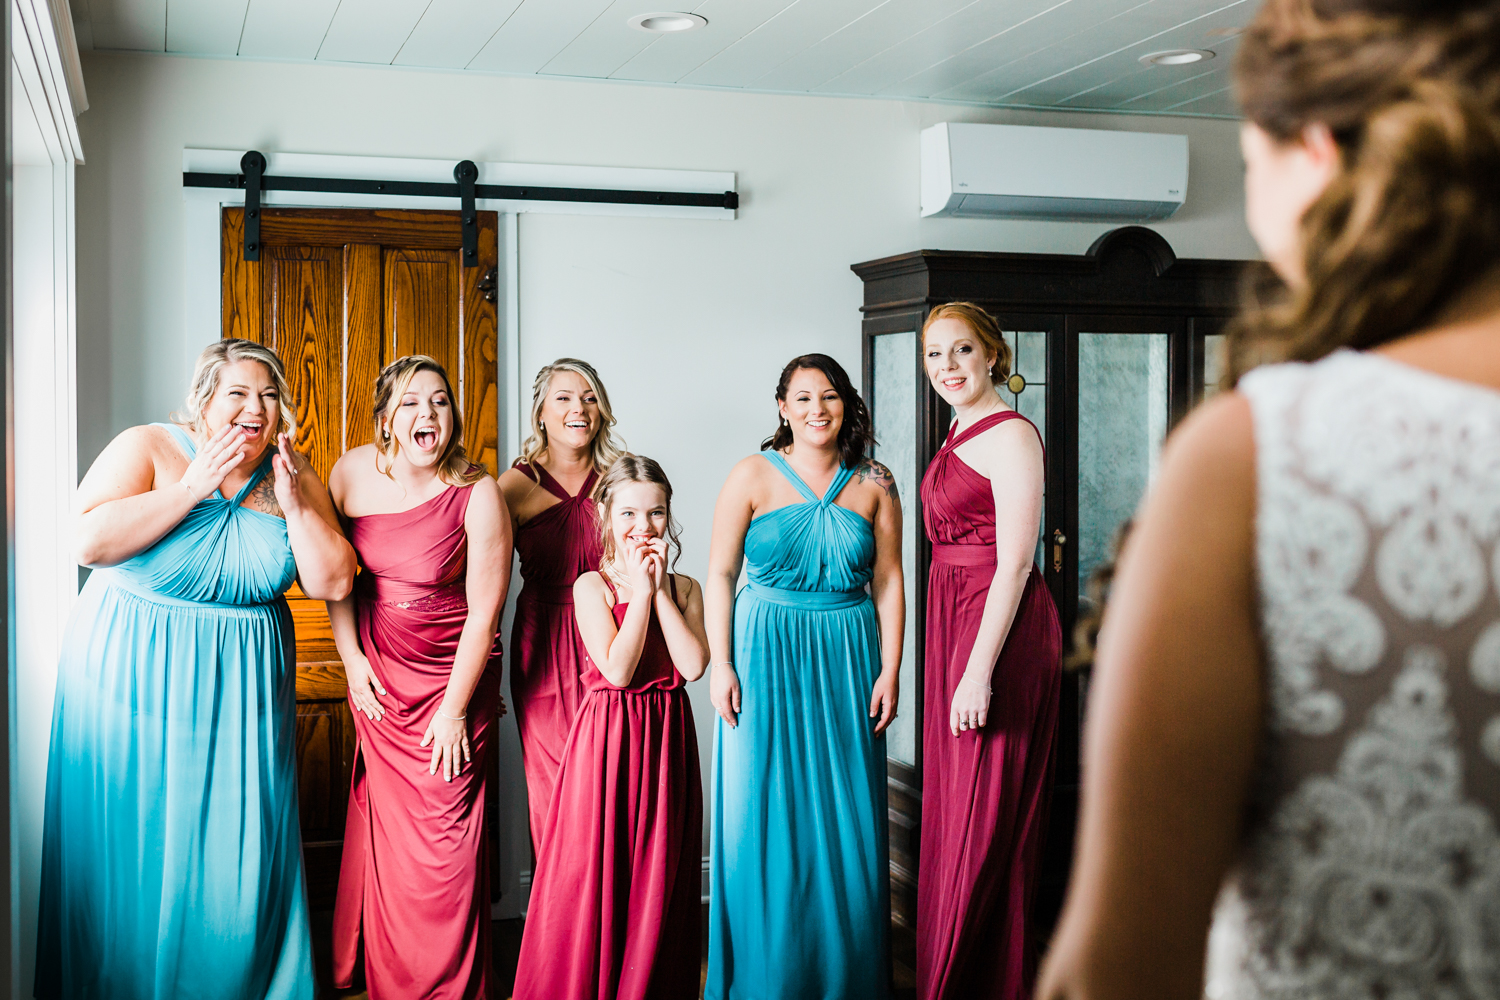 Bride reveals wedding dress to her bridal party - top husband and wife team photo video